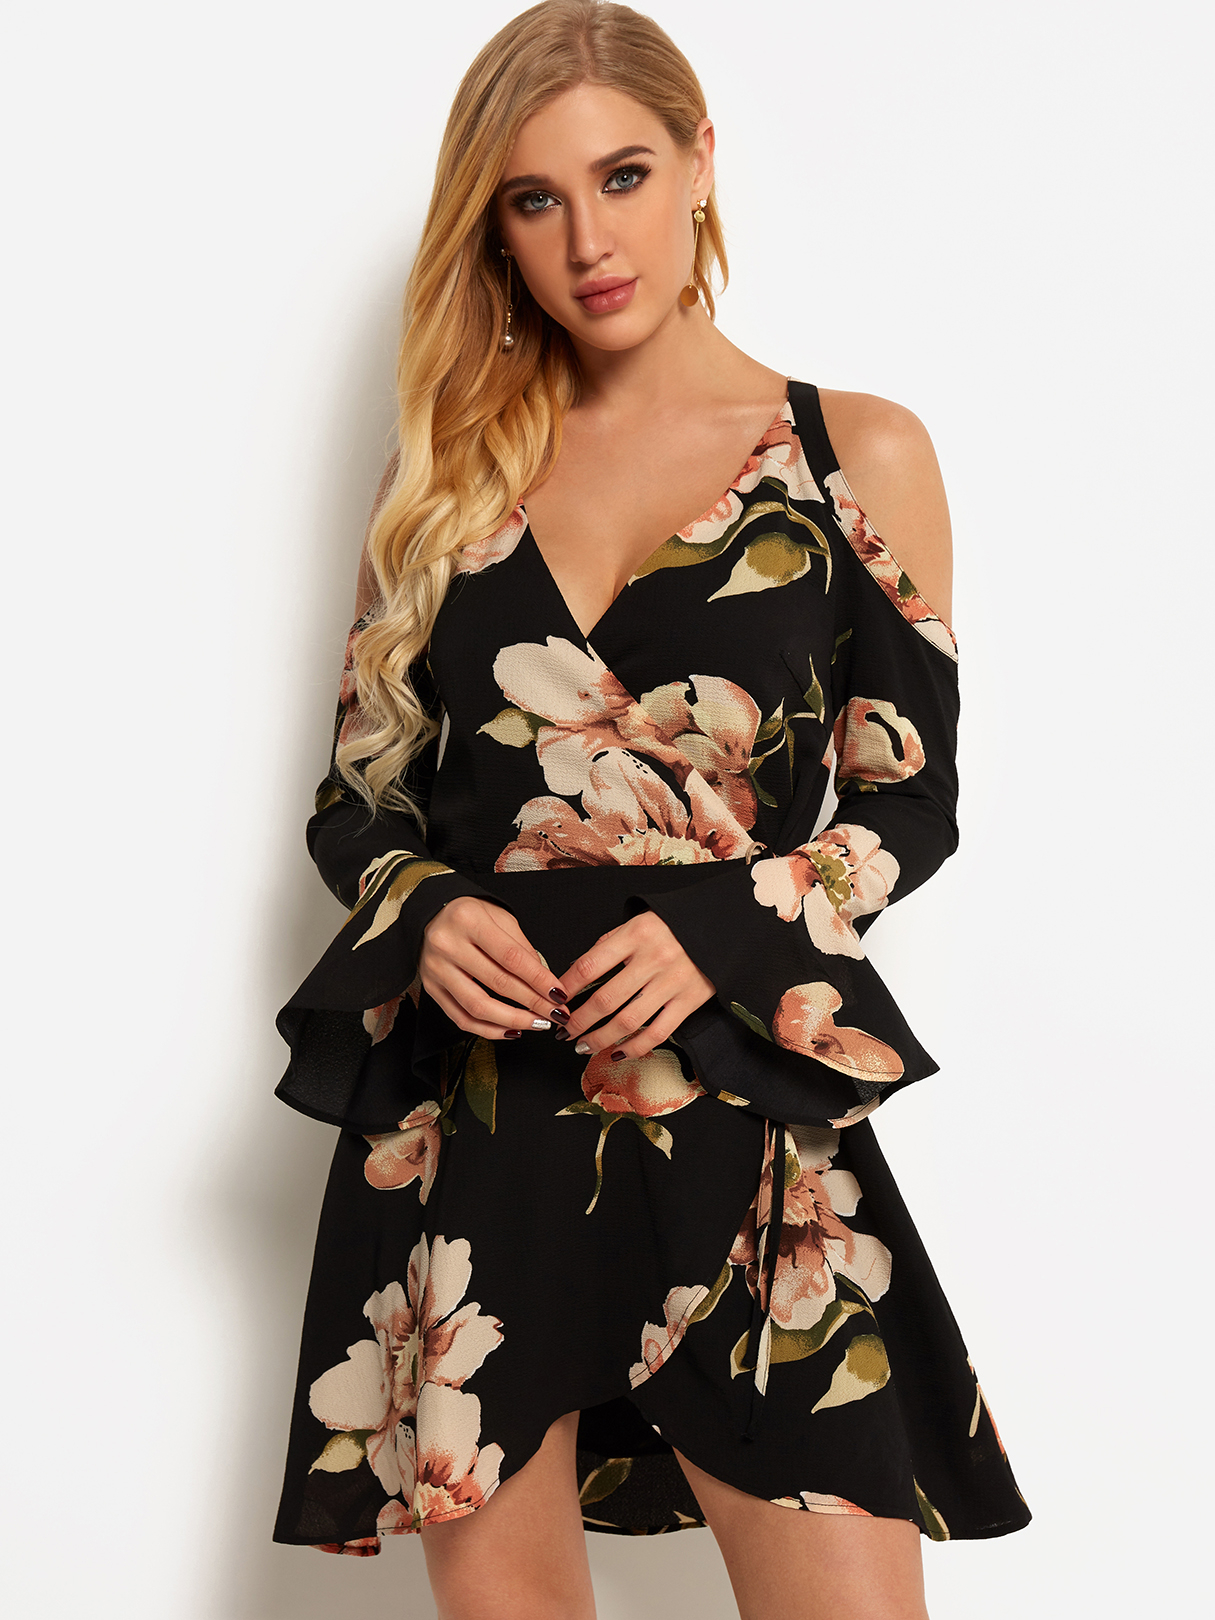 Black Criss-cross Random Floral Print Cold Shoulder Bell Sleeves Self-tie Design Dress